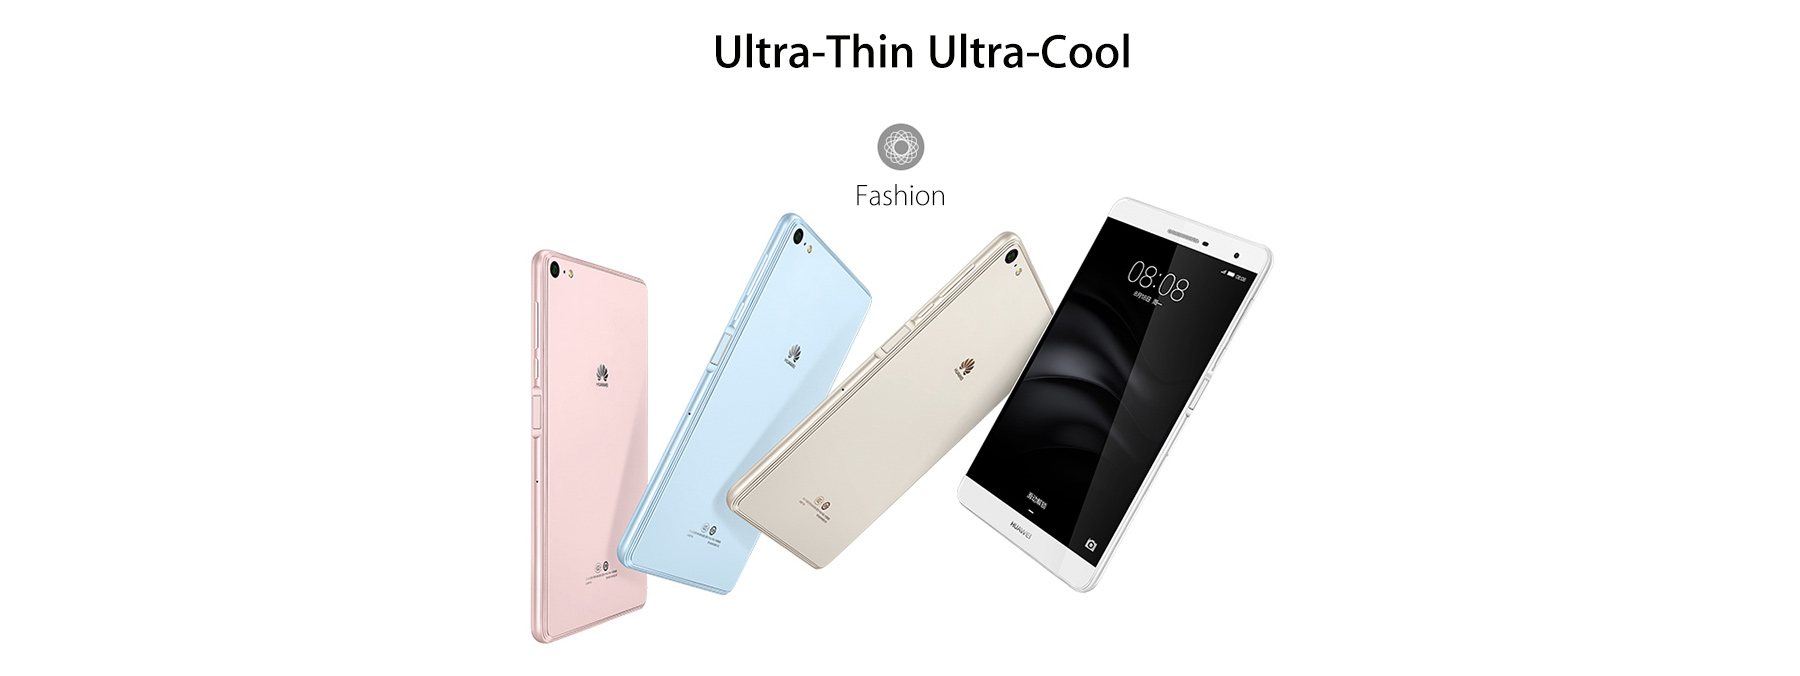 HUAWEI M2 PLE-703L Android 5.1 4G Phablet MSM8939 Octa Core 1.2GHz 7.0 inch Screen 3GB RAM 16GB ROM WiFi GPS Fingerprint Recognition